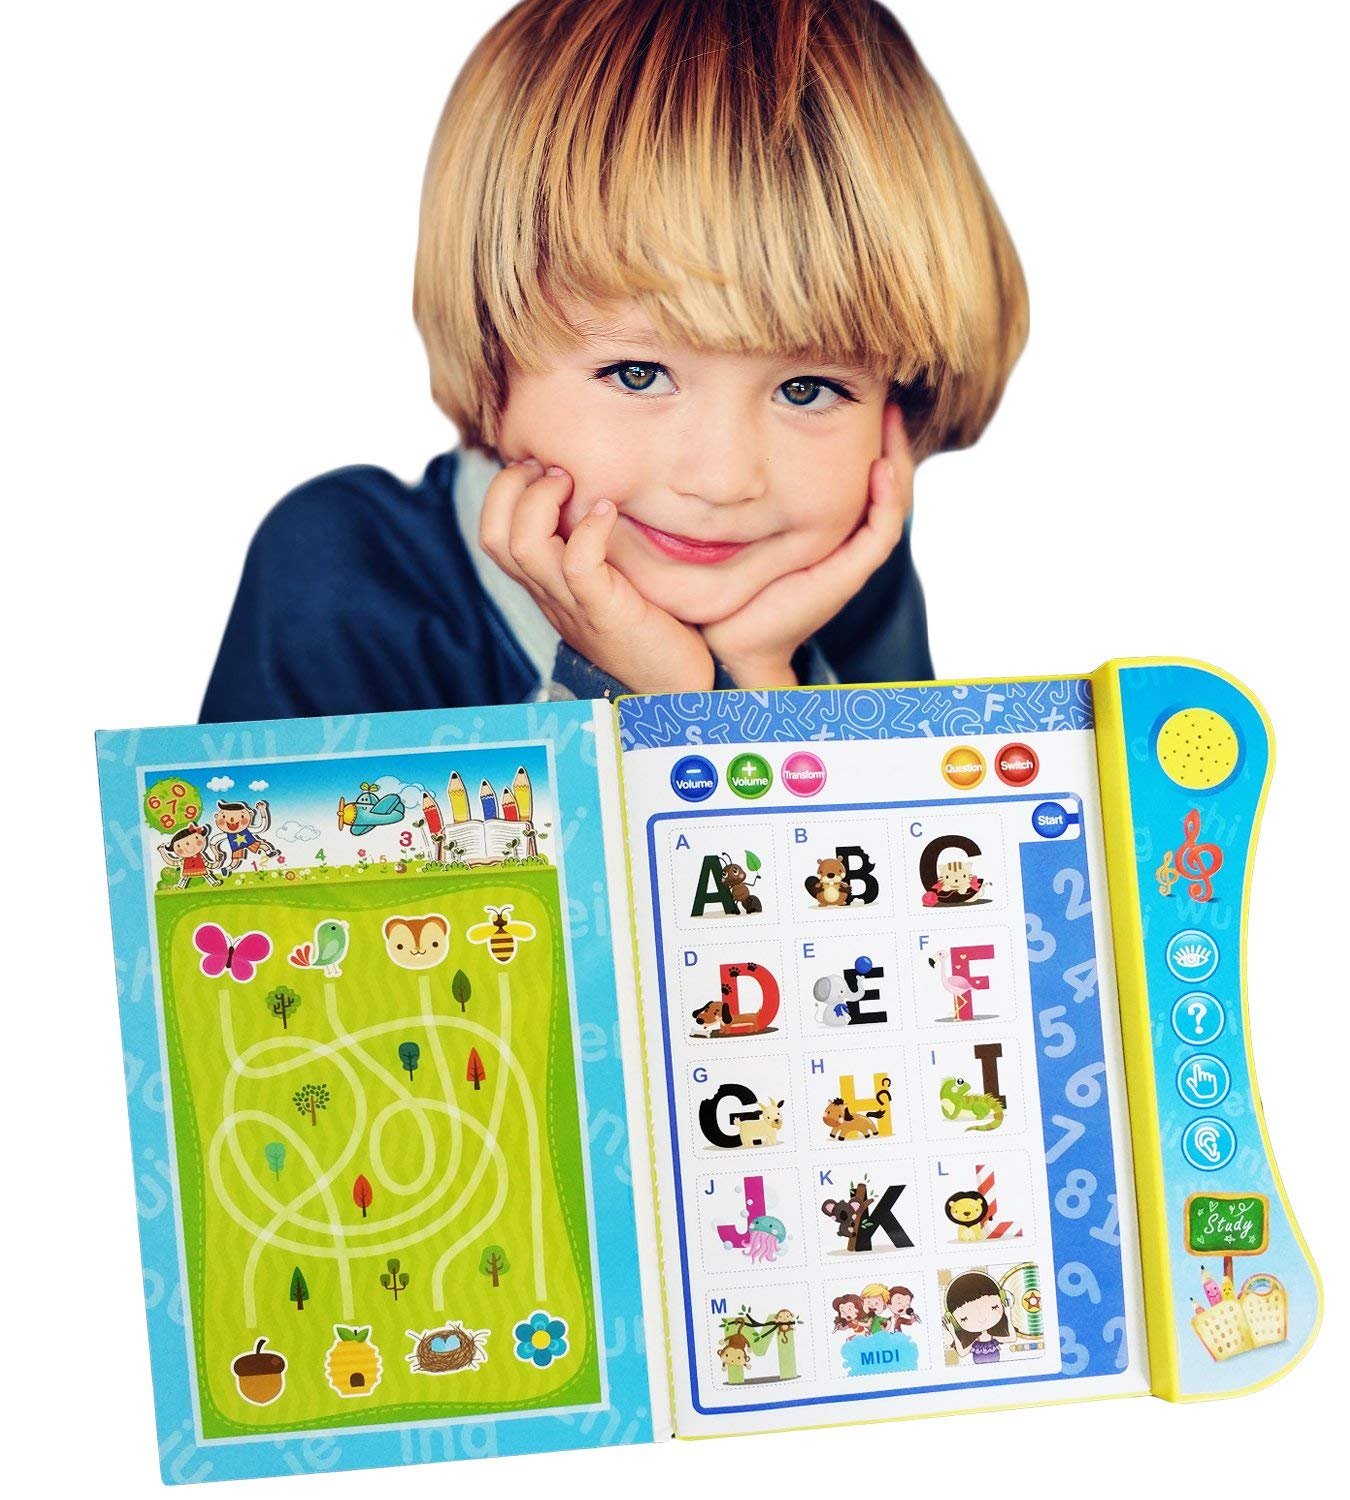 For 2 Years an Plastic Blocks with Audio Talking ABC Blocks Alphabet Learning